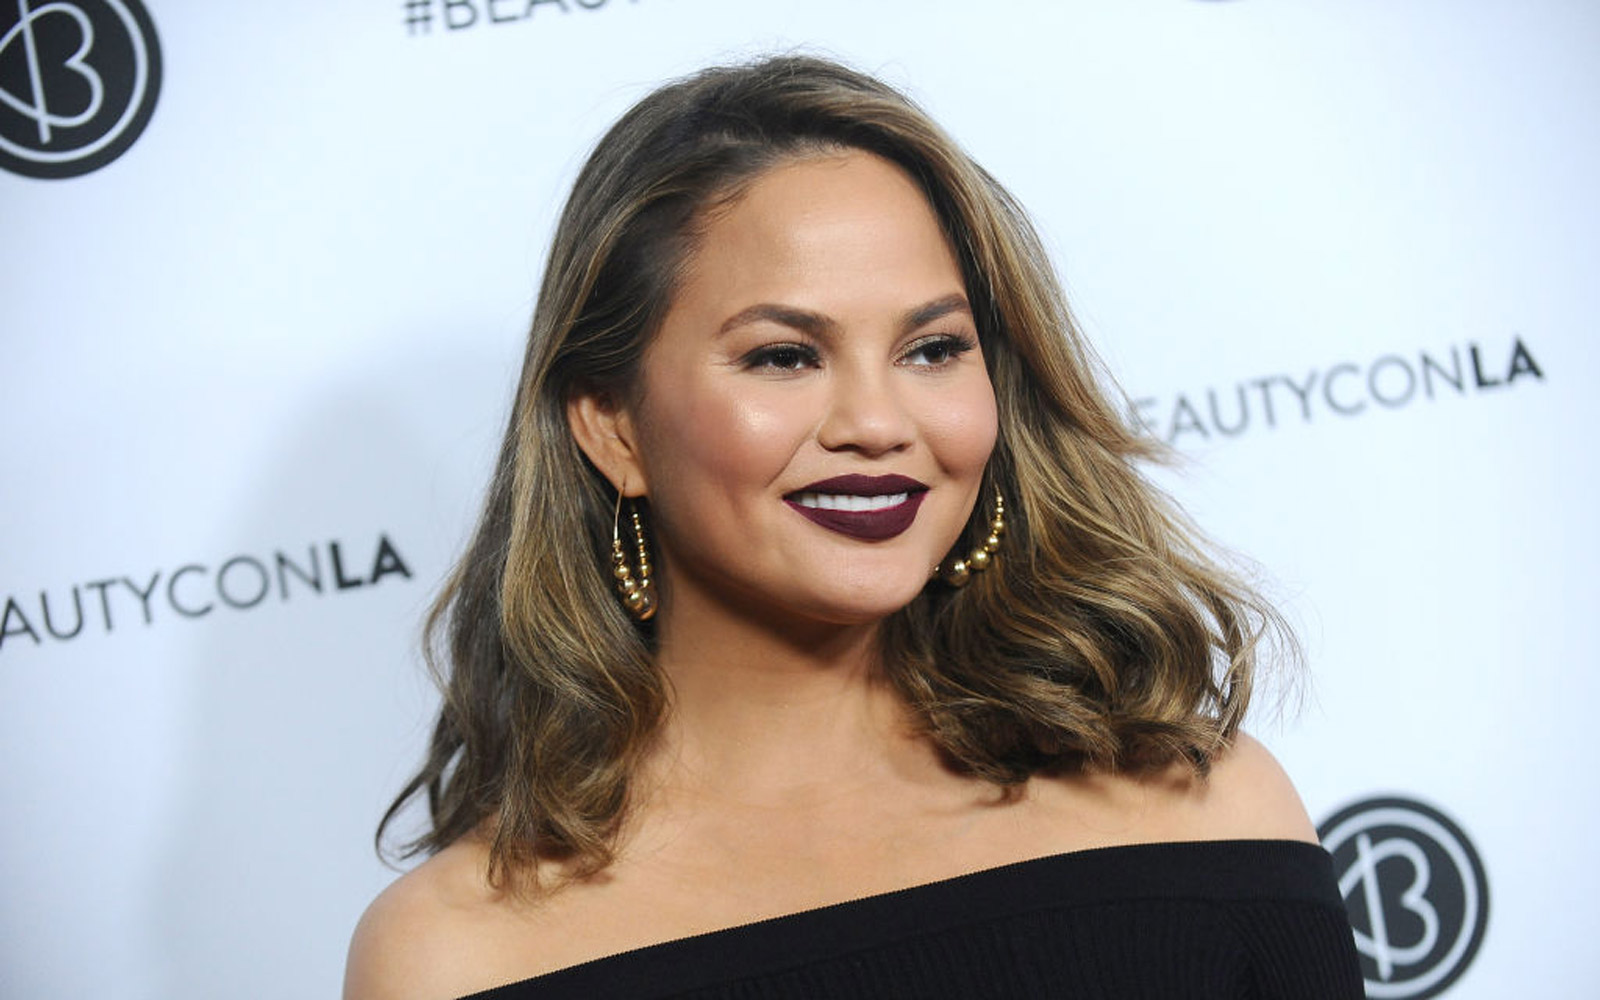 Chrissy Teigen Wants to Travel Around China Like the 'Real Housewives of Beverly Hills'